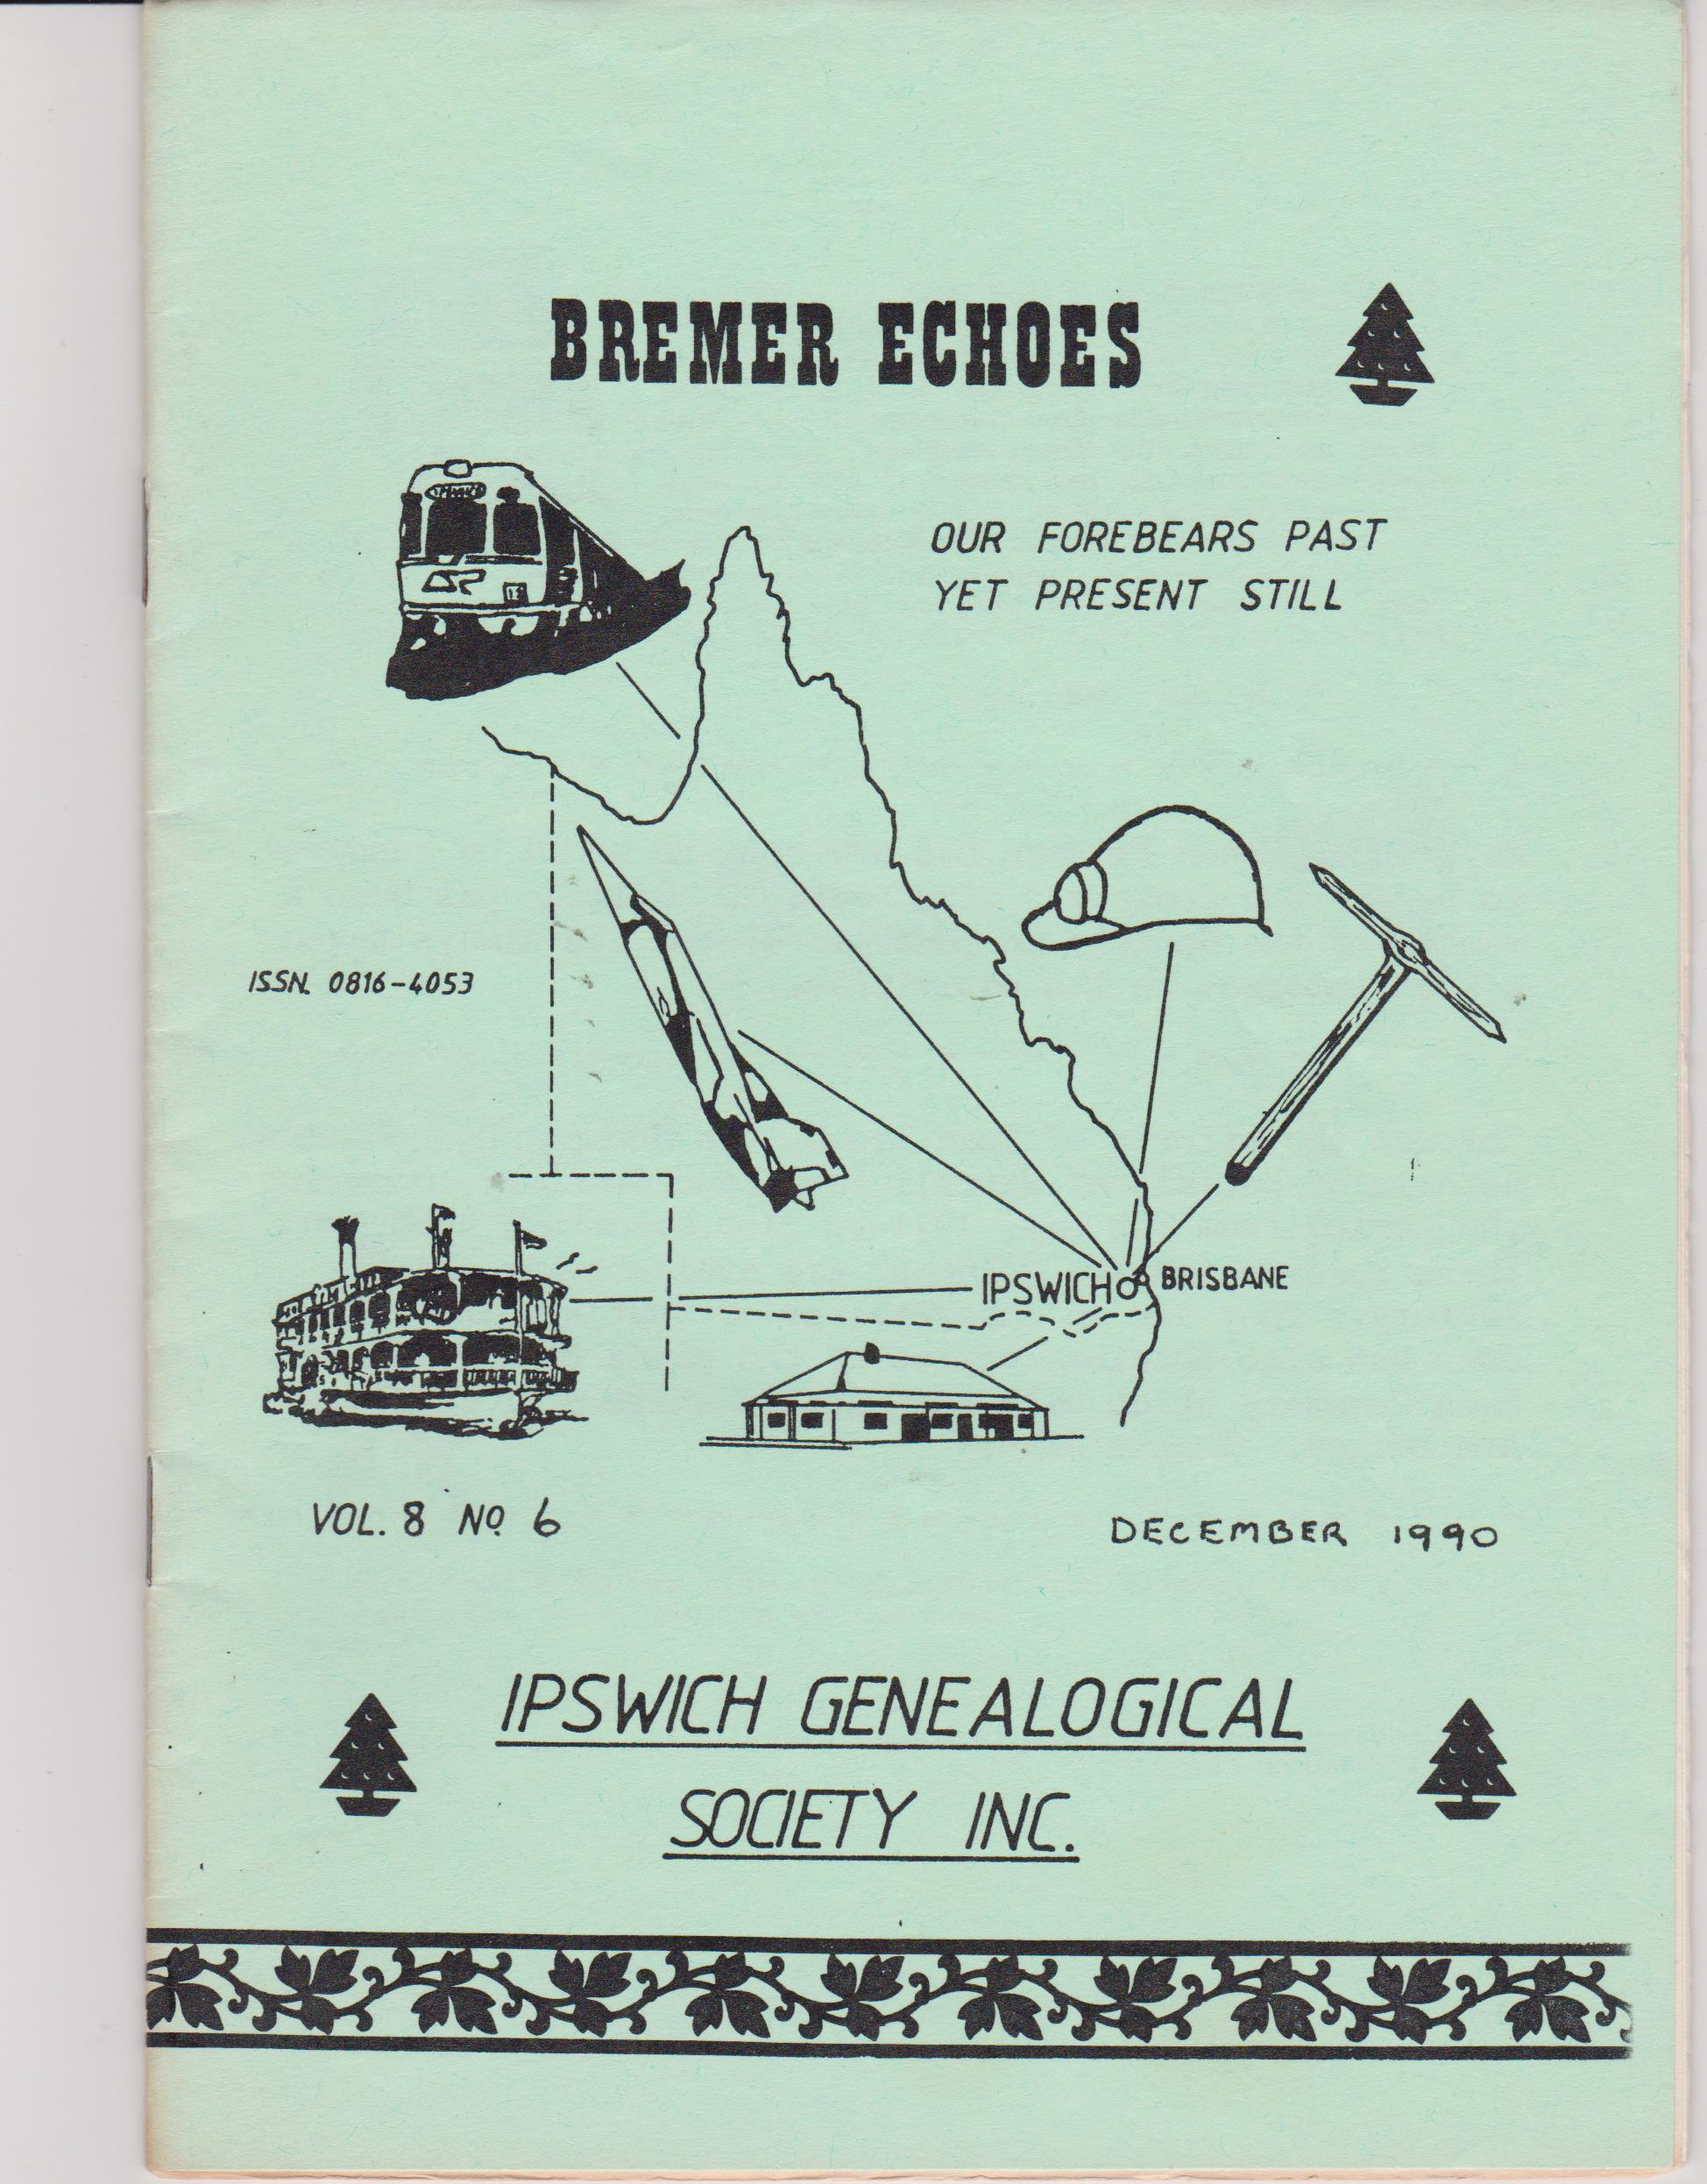 Bremer Echoes Vol 8 No 6 December 1990